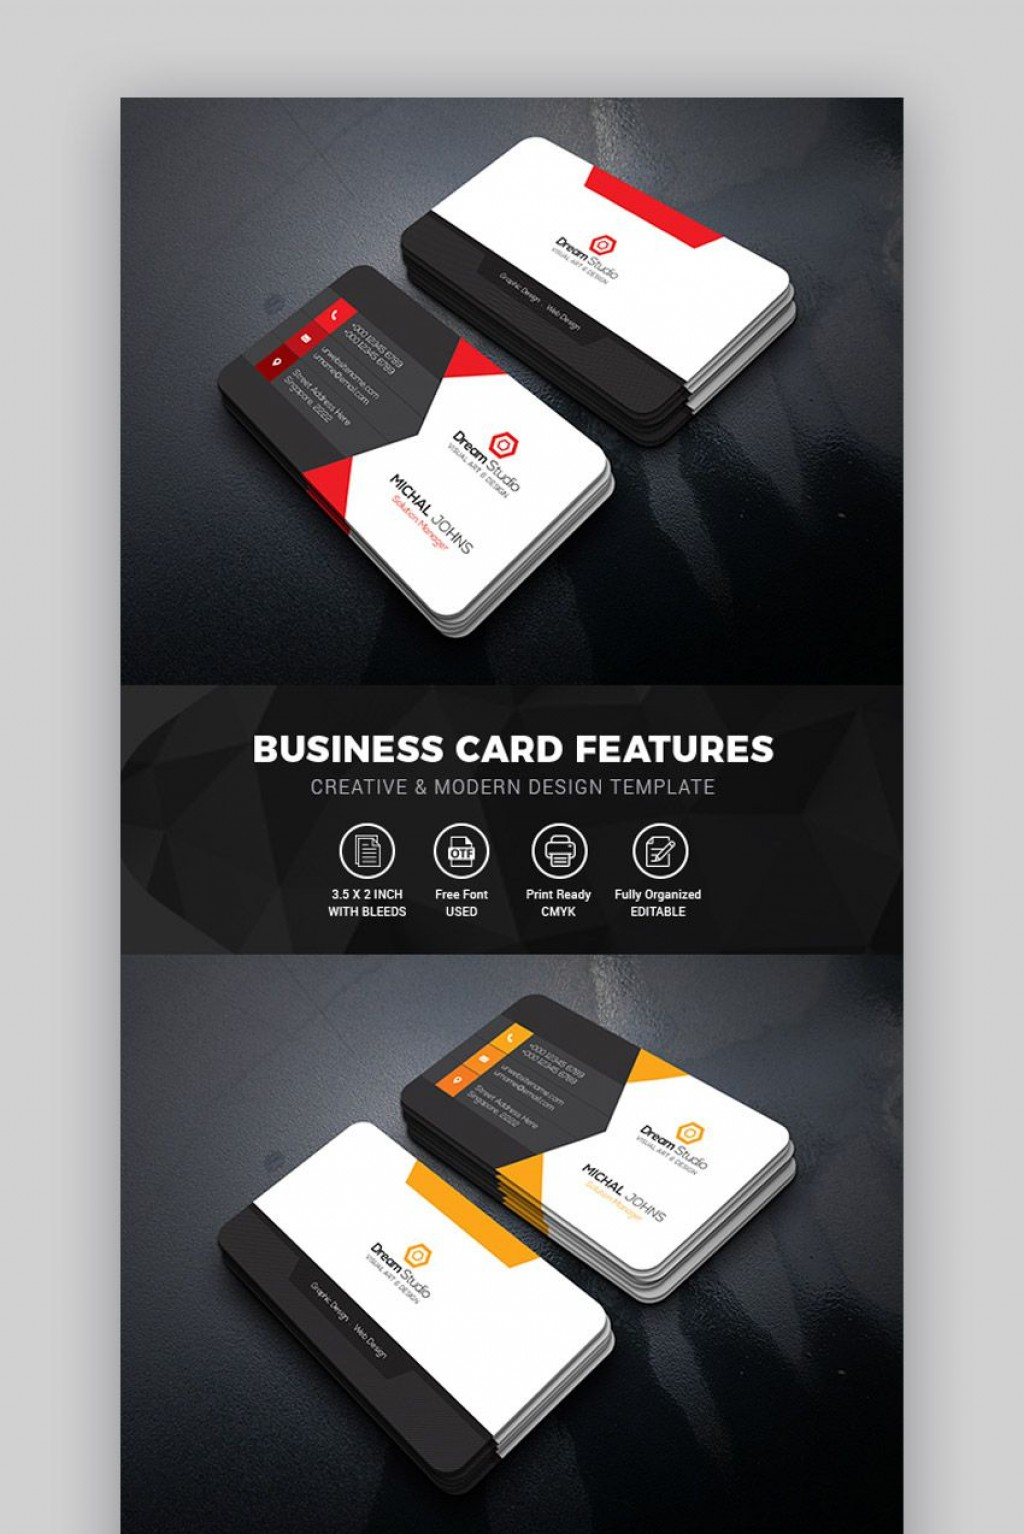 010 Awesome Blank Busines Card Template Psd Free Download Idea  PhotoshopLarge